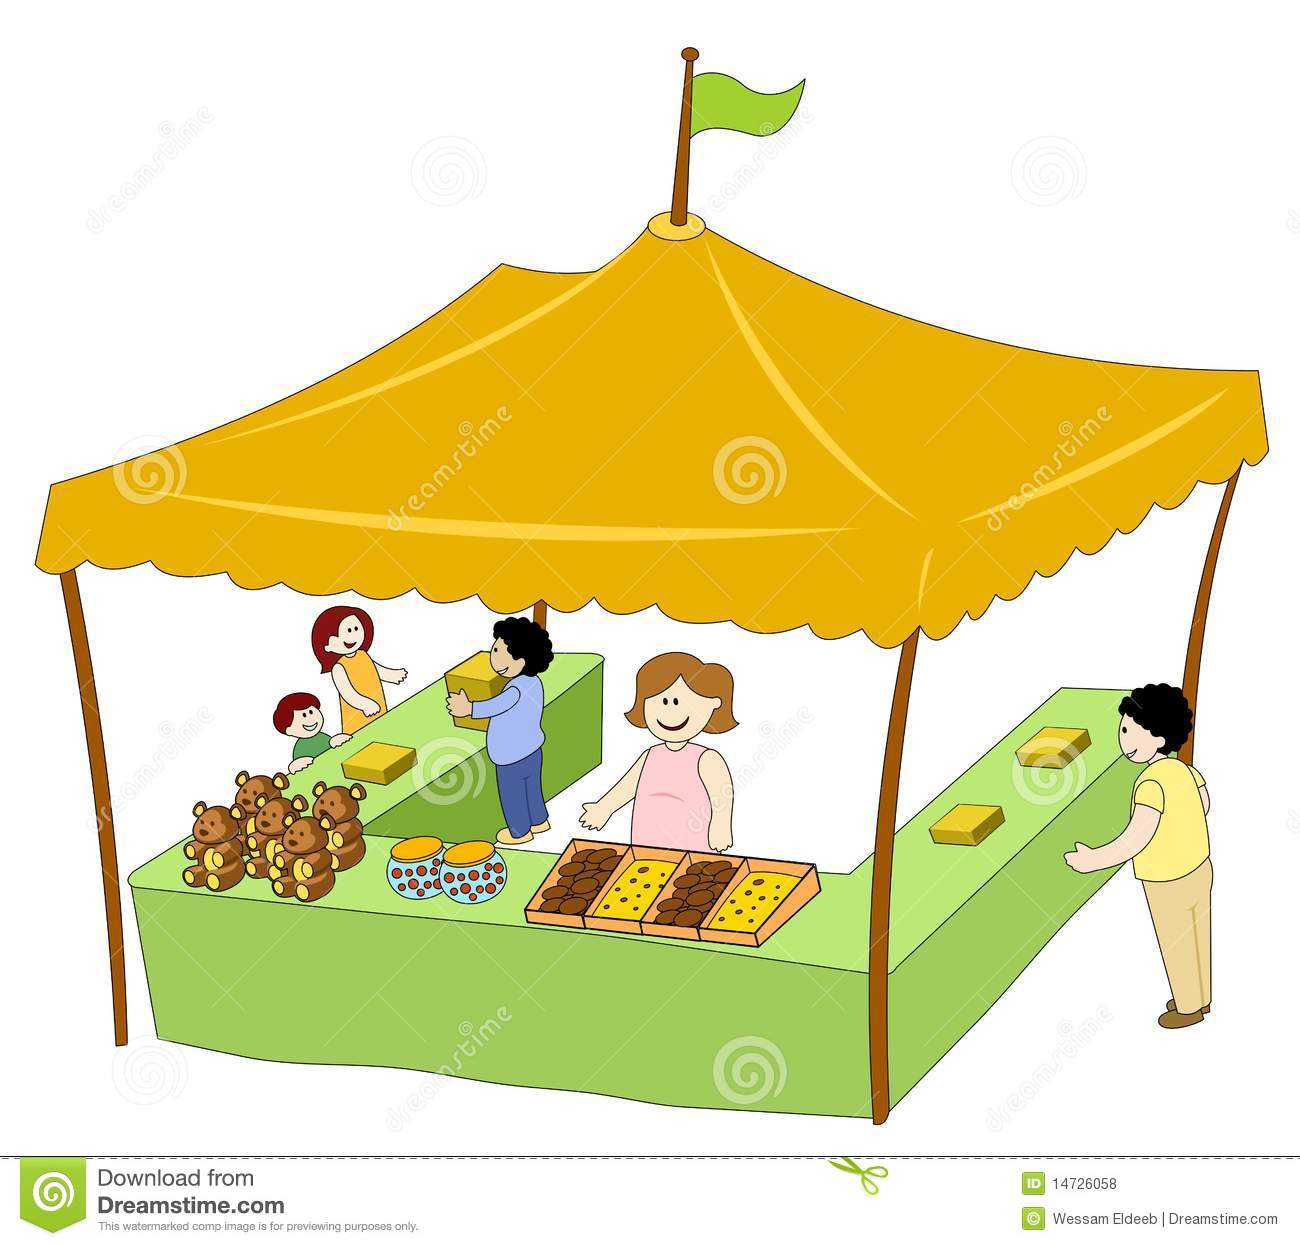 Food   Beverage Tent Royalty Free Stock Photos   Image  14726058